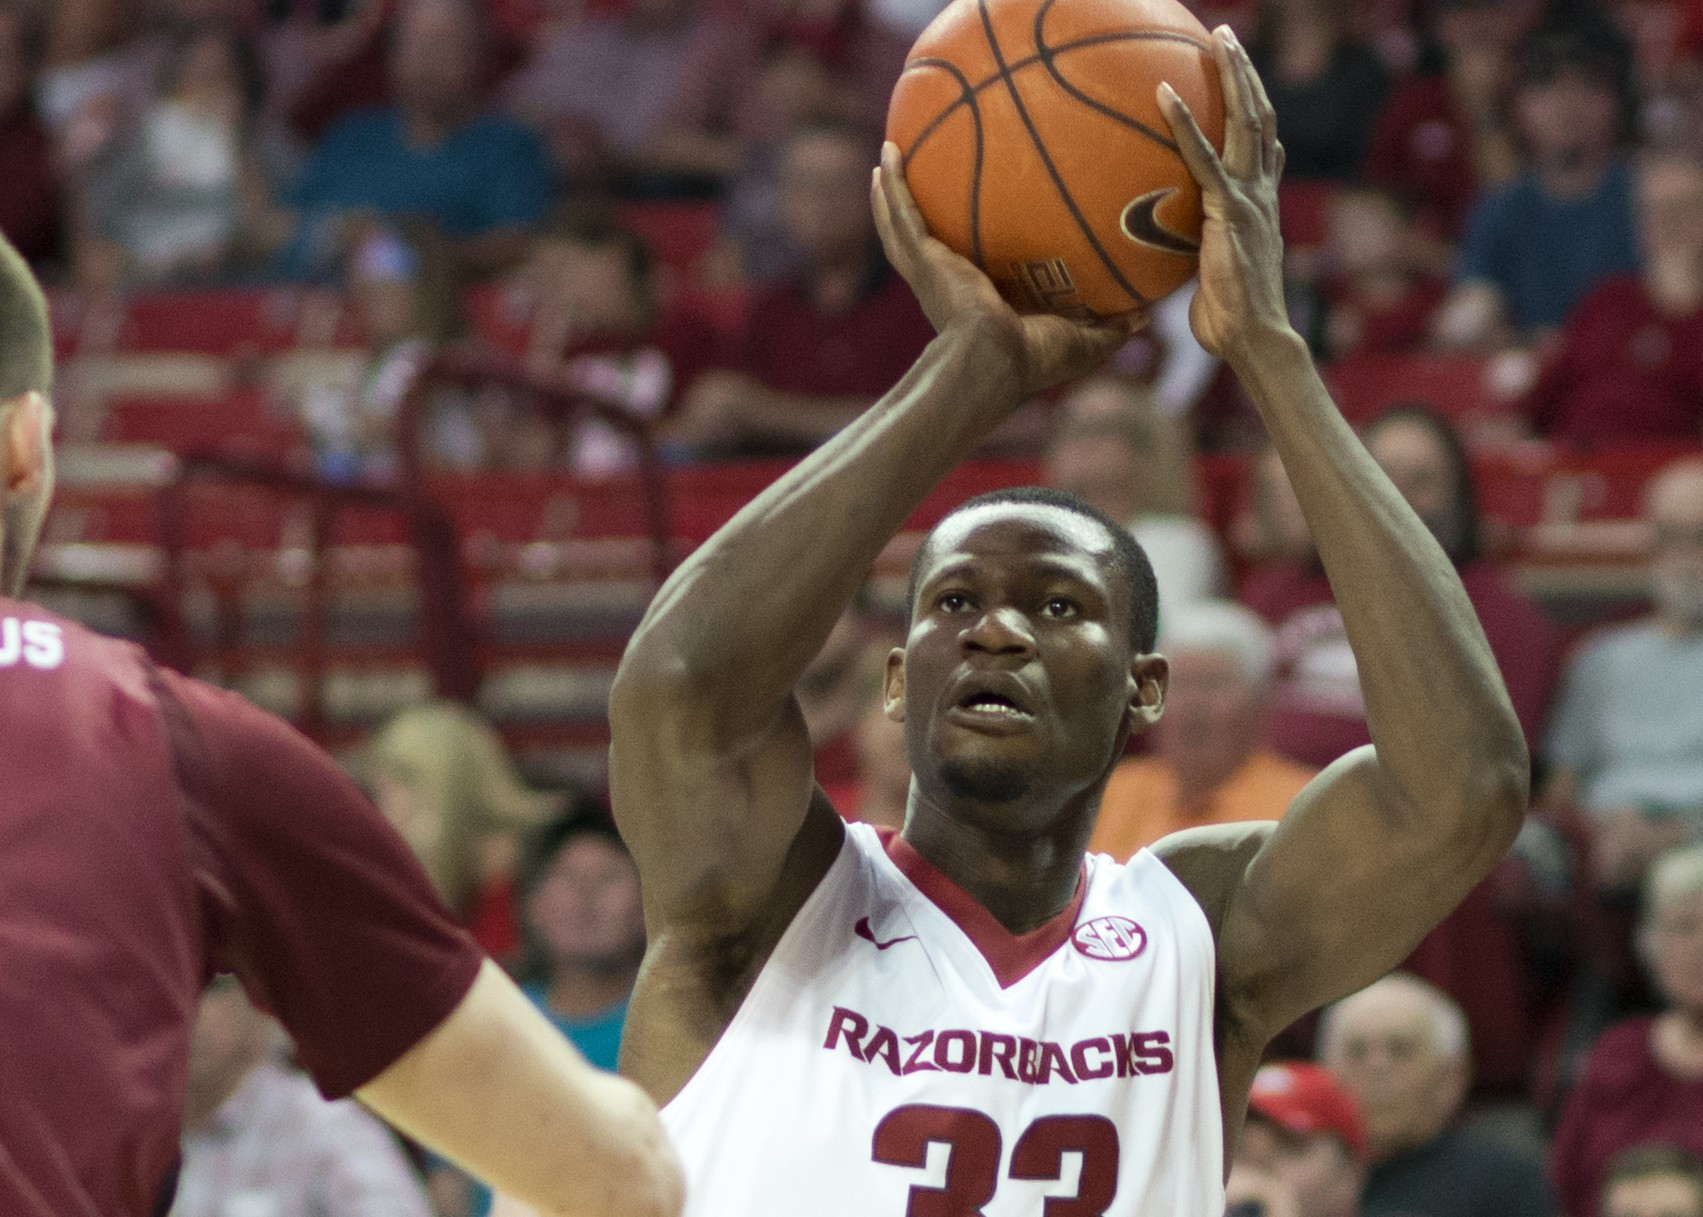 Arkansas' Moses Kingsley (33) shoots a basket over South Carolina's Laimonas Chatkevicius (14) in the first half of an NCAA college basketball game against South Carolina in Fayetteville, Ark., Saturday, March 5, 2016. (AP Photo/Sarah Bentham)